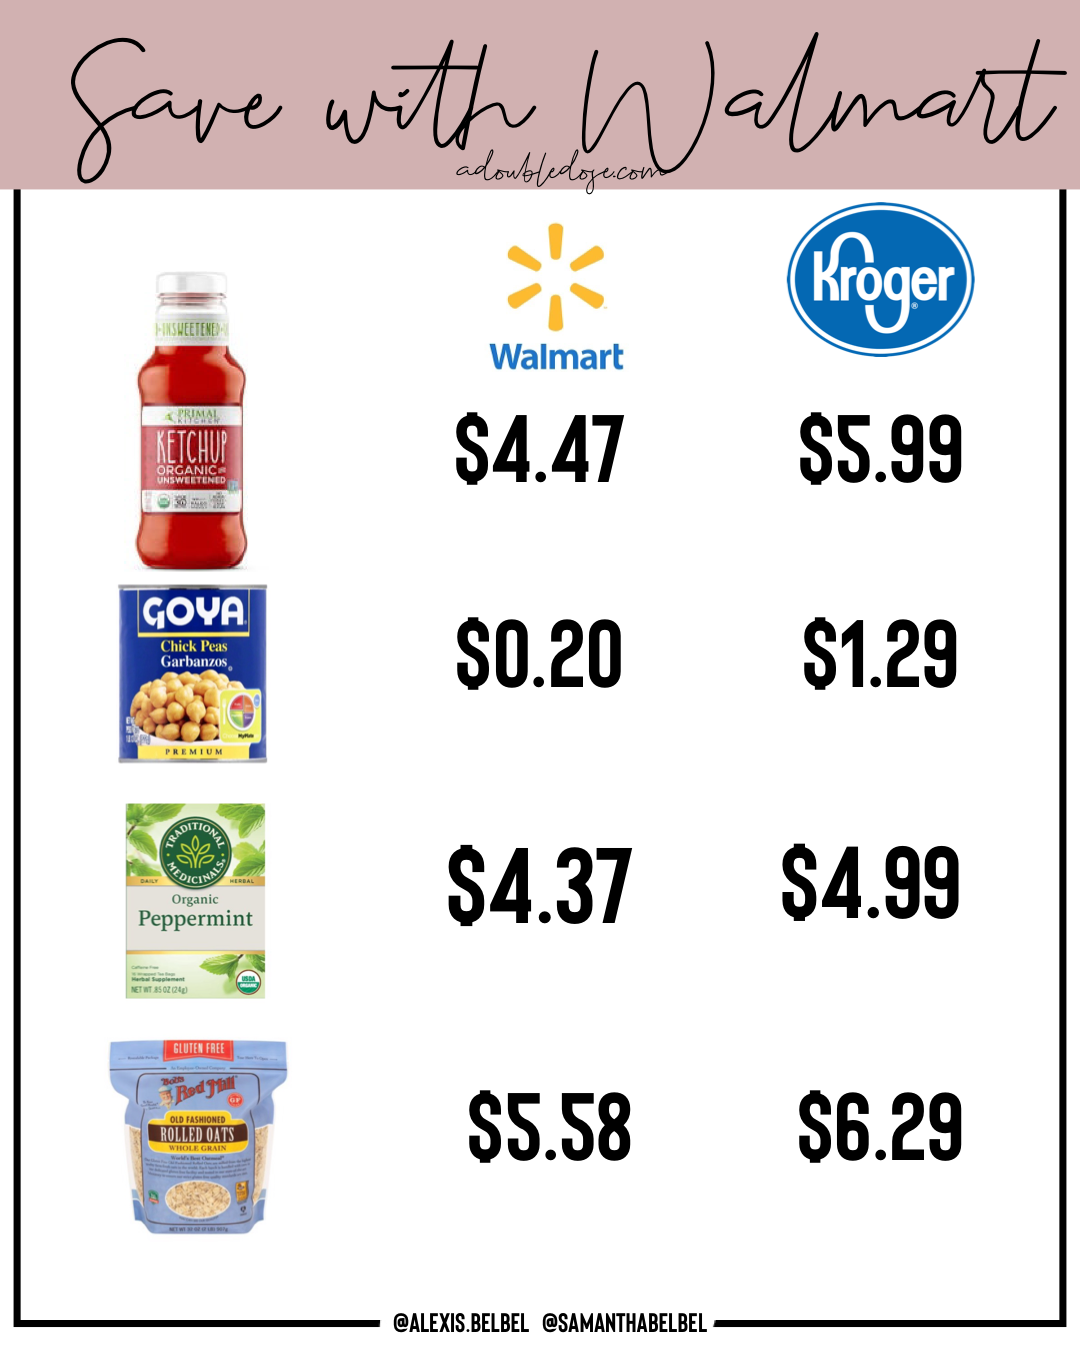 lifestyle and fashion blogger samantha belbel shares how she uses Walmart Grocery Pickup and Delivery to get groceries for the week and how much she saves vs Kroger   adoubledose.com